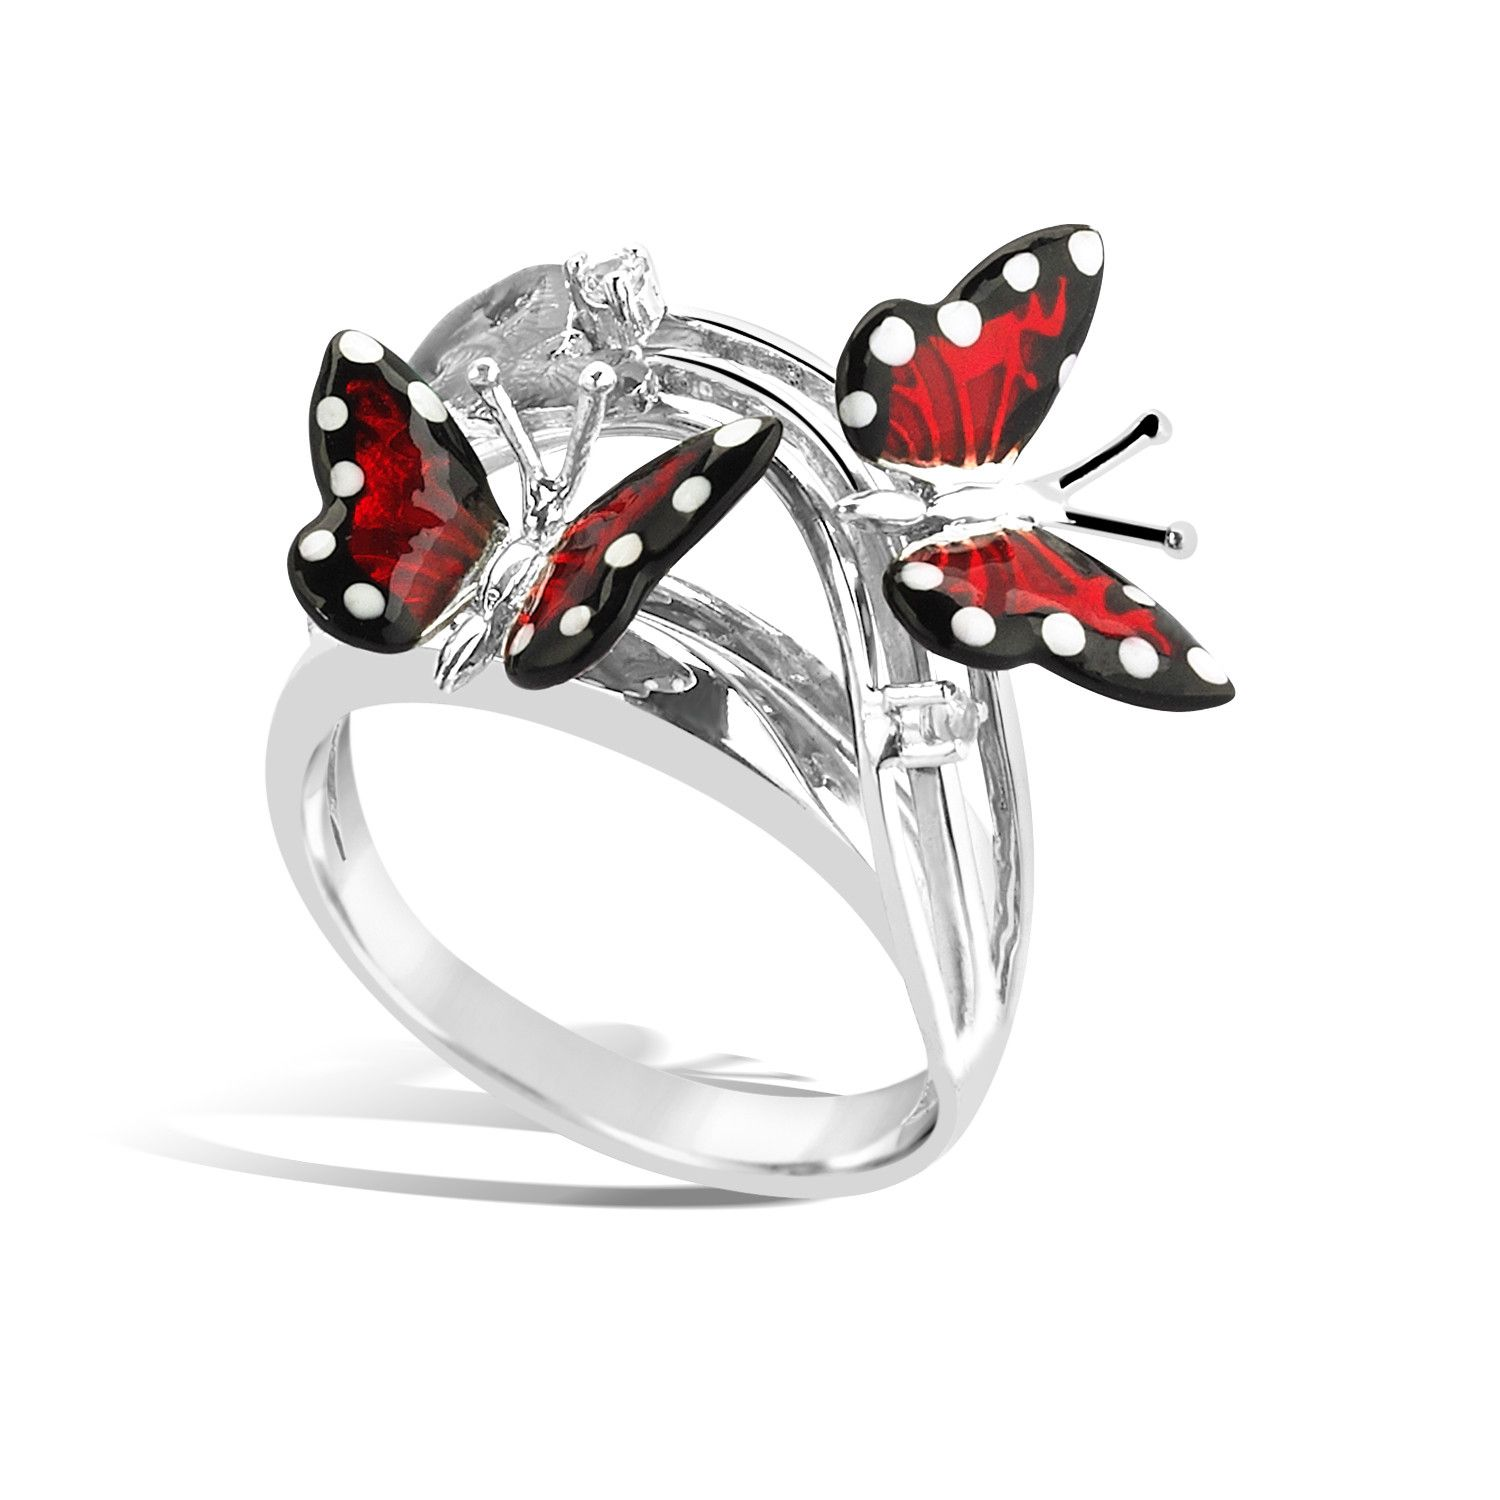 rings cz micropave clear byj bling ring jewelry sterling sterlingsilver small silver butterfly